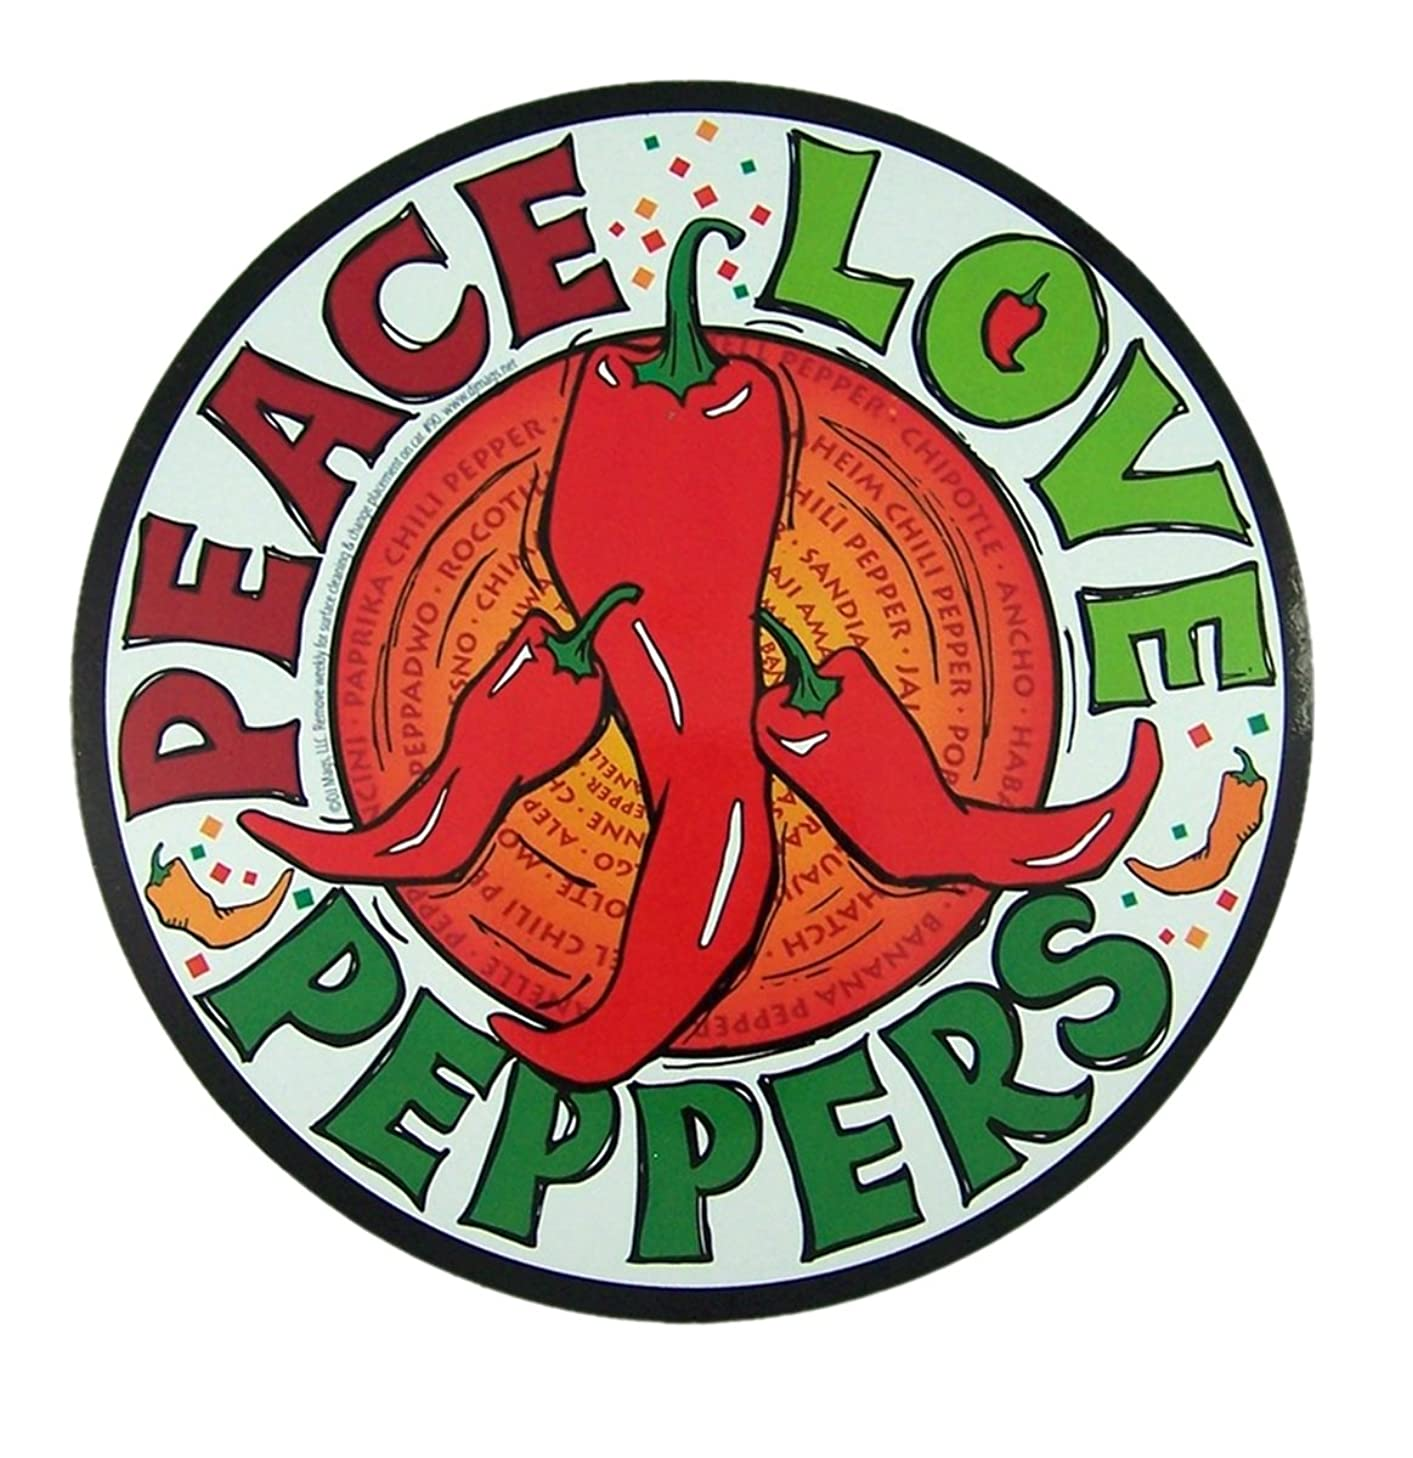 Peace Love Peppers Magnet for Car, Office or Refrigerator, 5 3/4 Inch